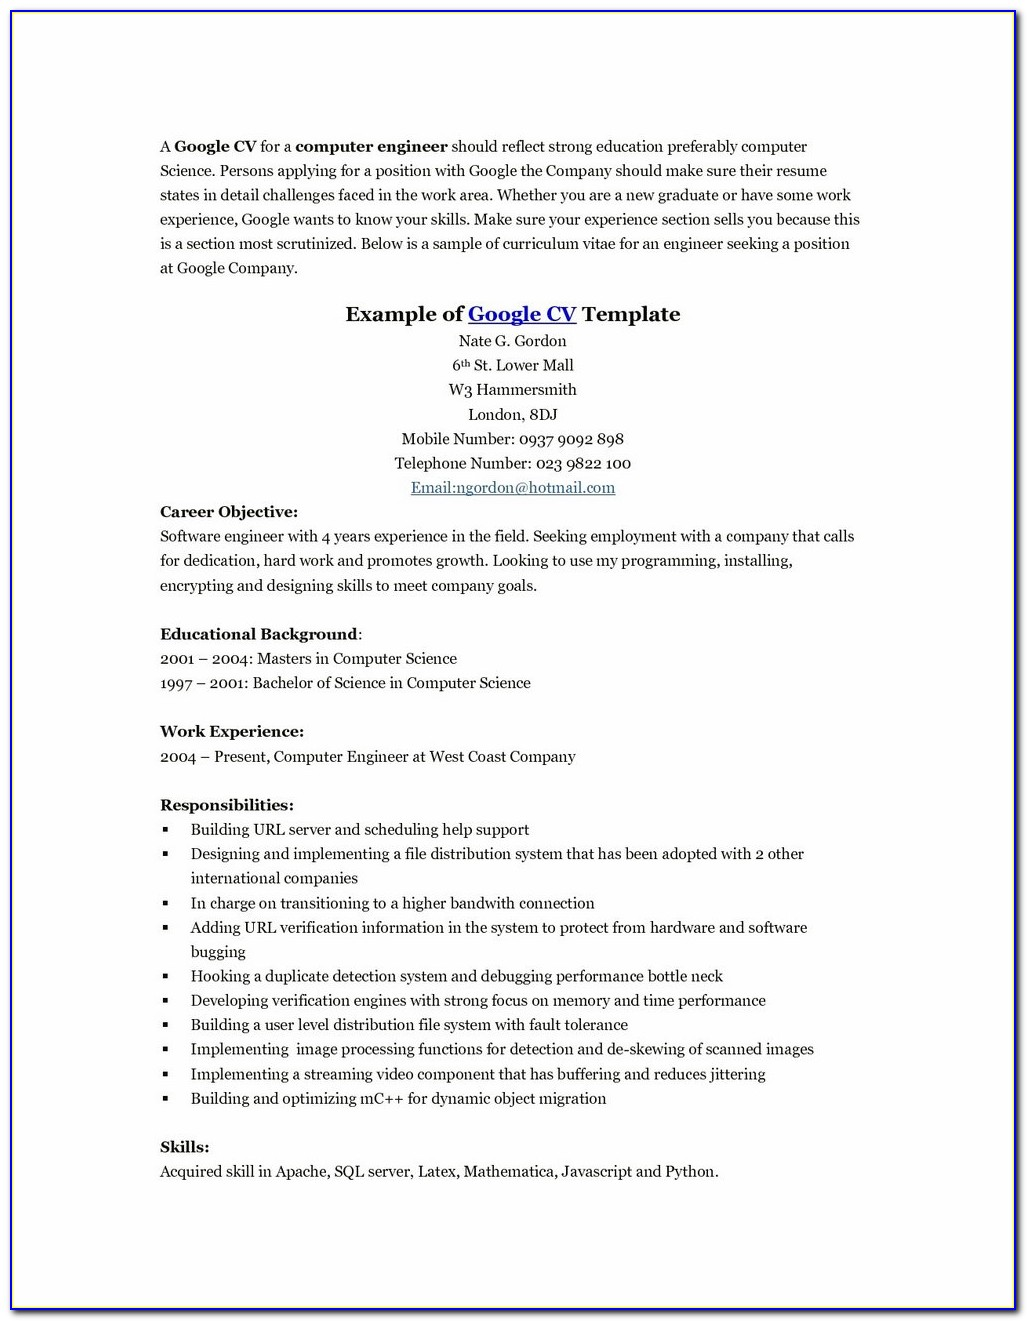 Resume Templates Cover Letter